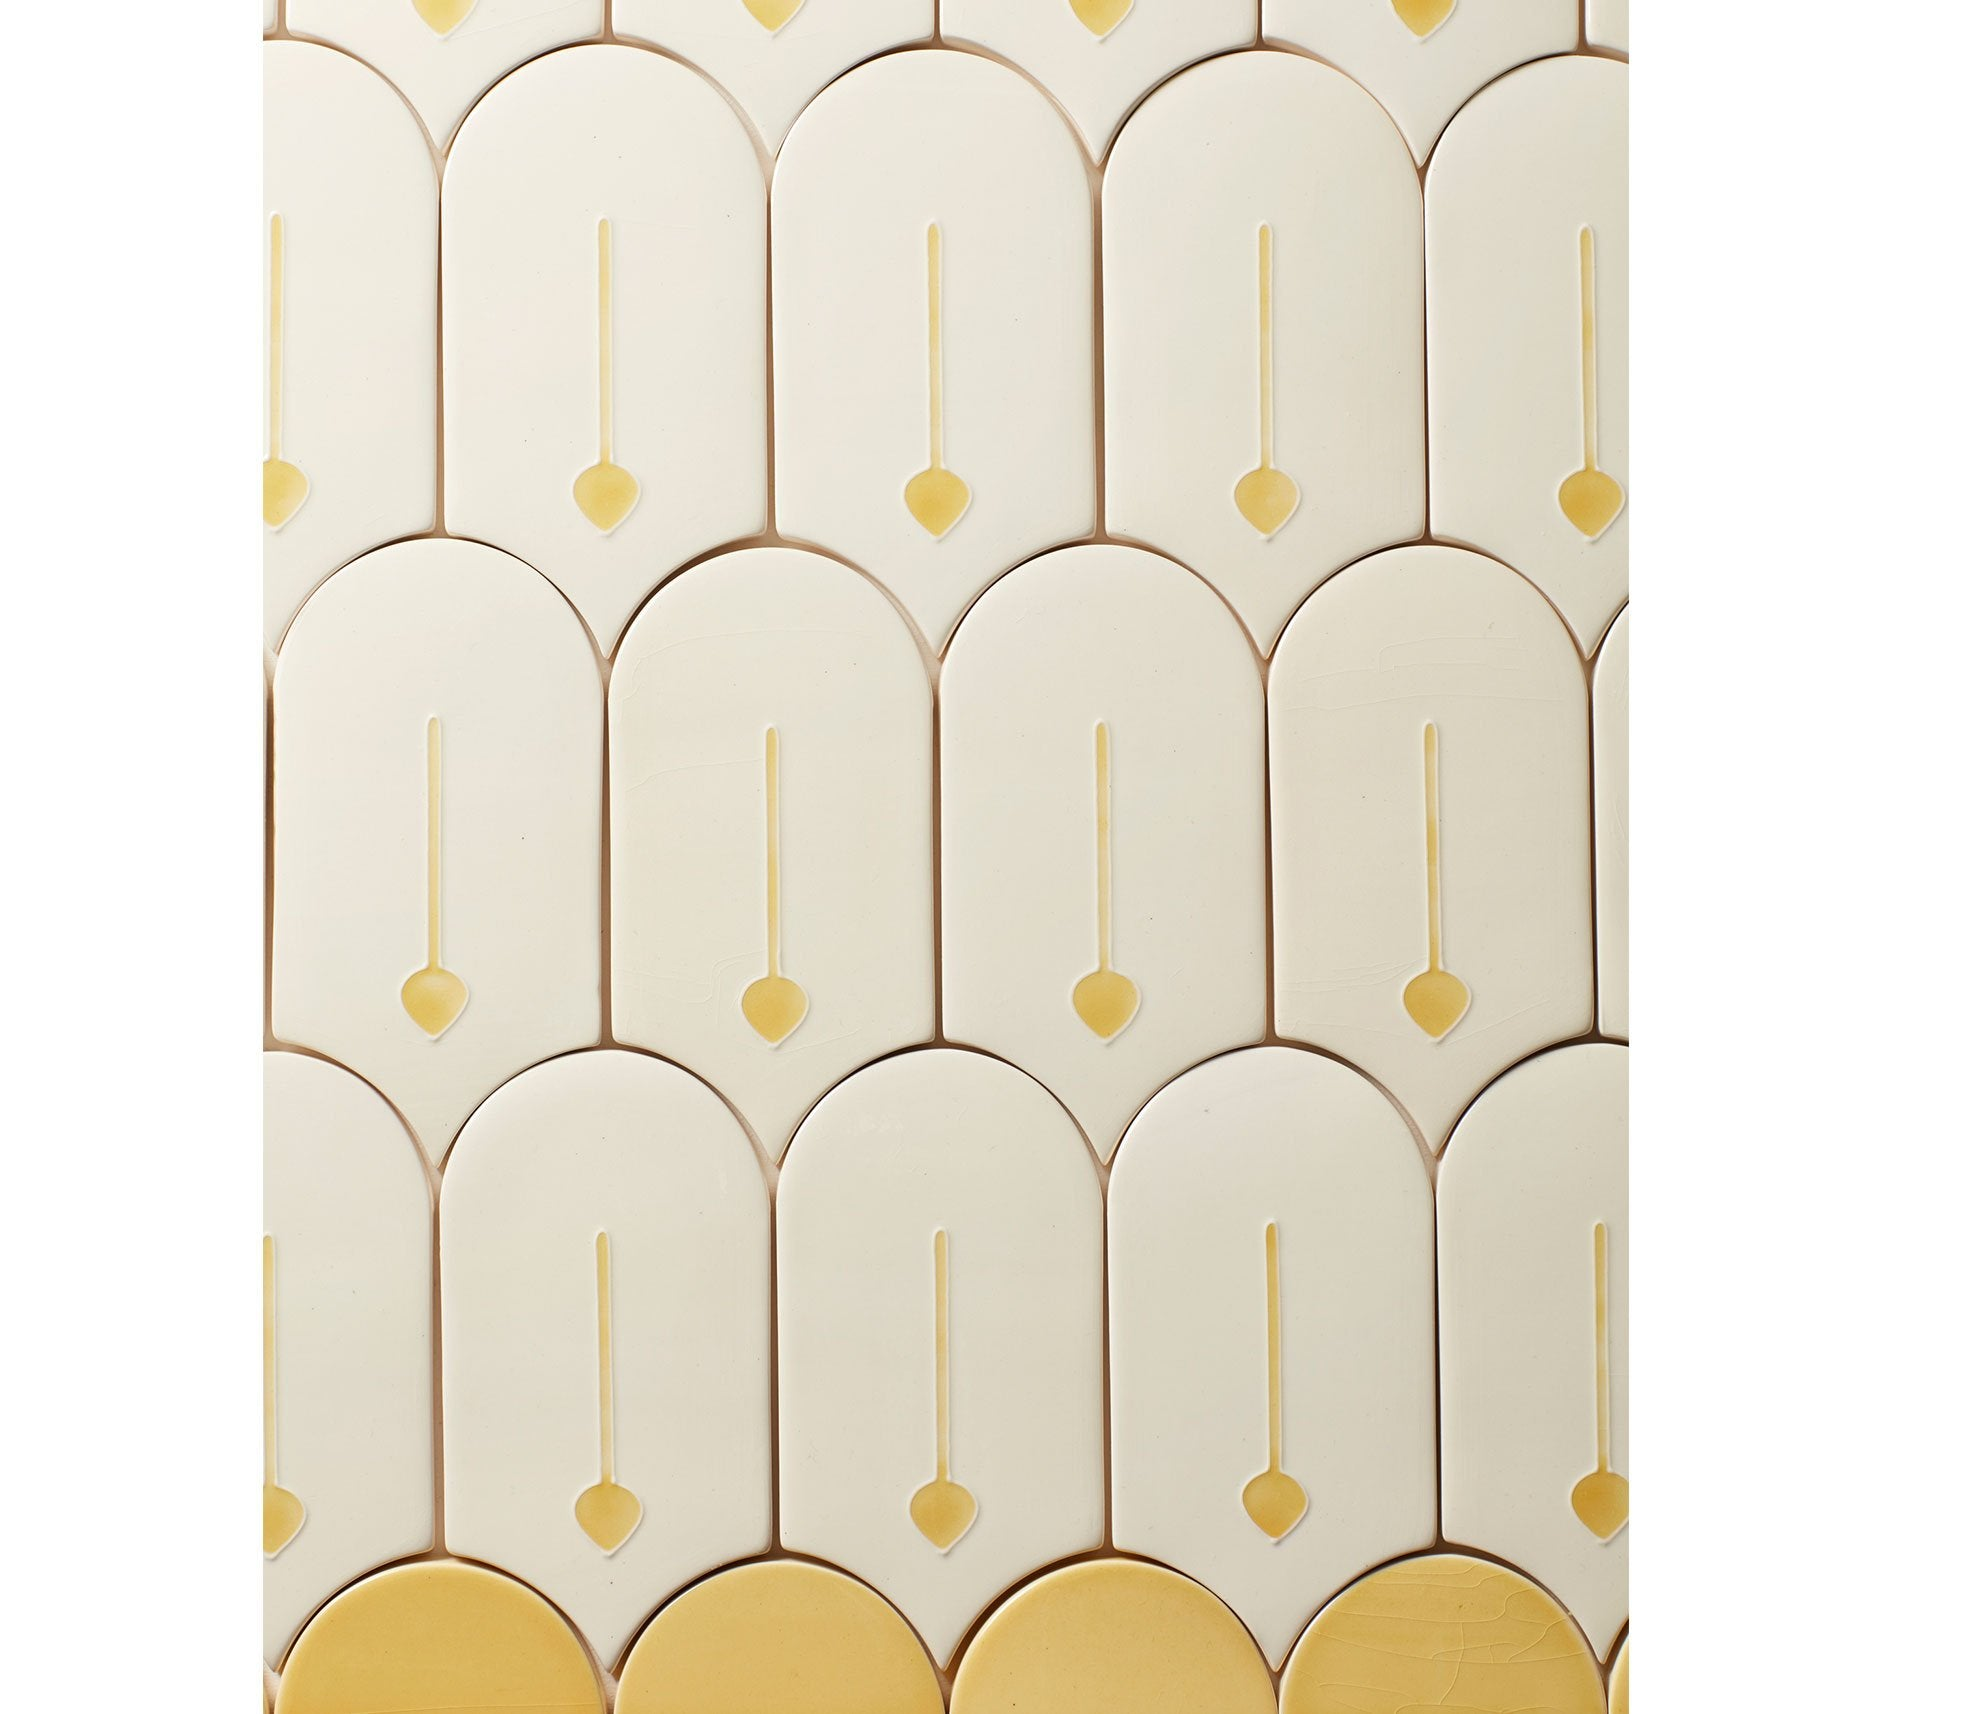 Hanley Tube Lined Decorative Tiles Product Image 3